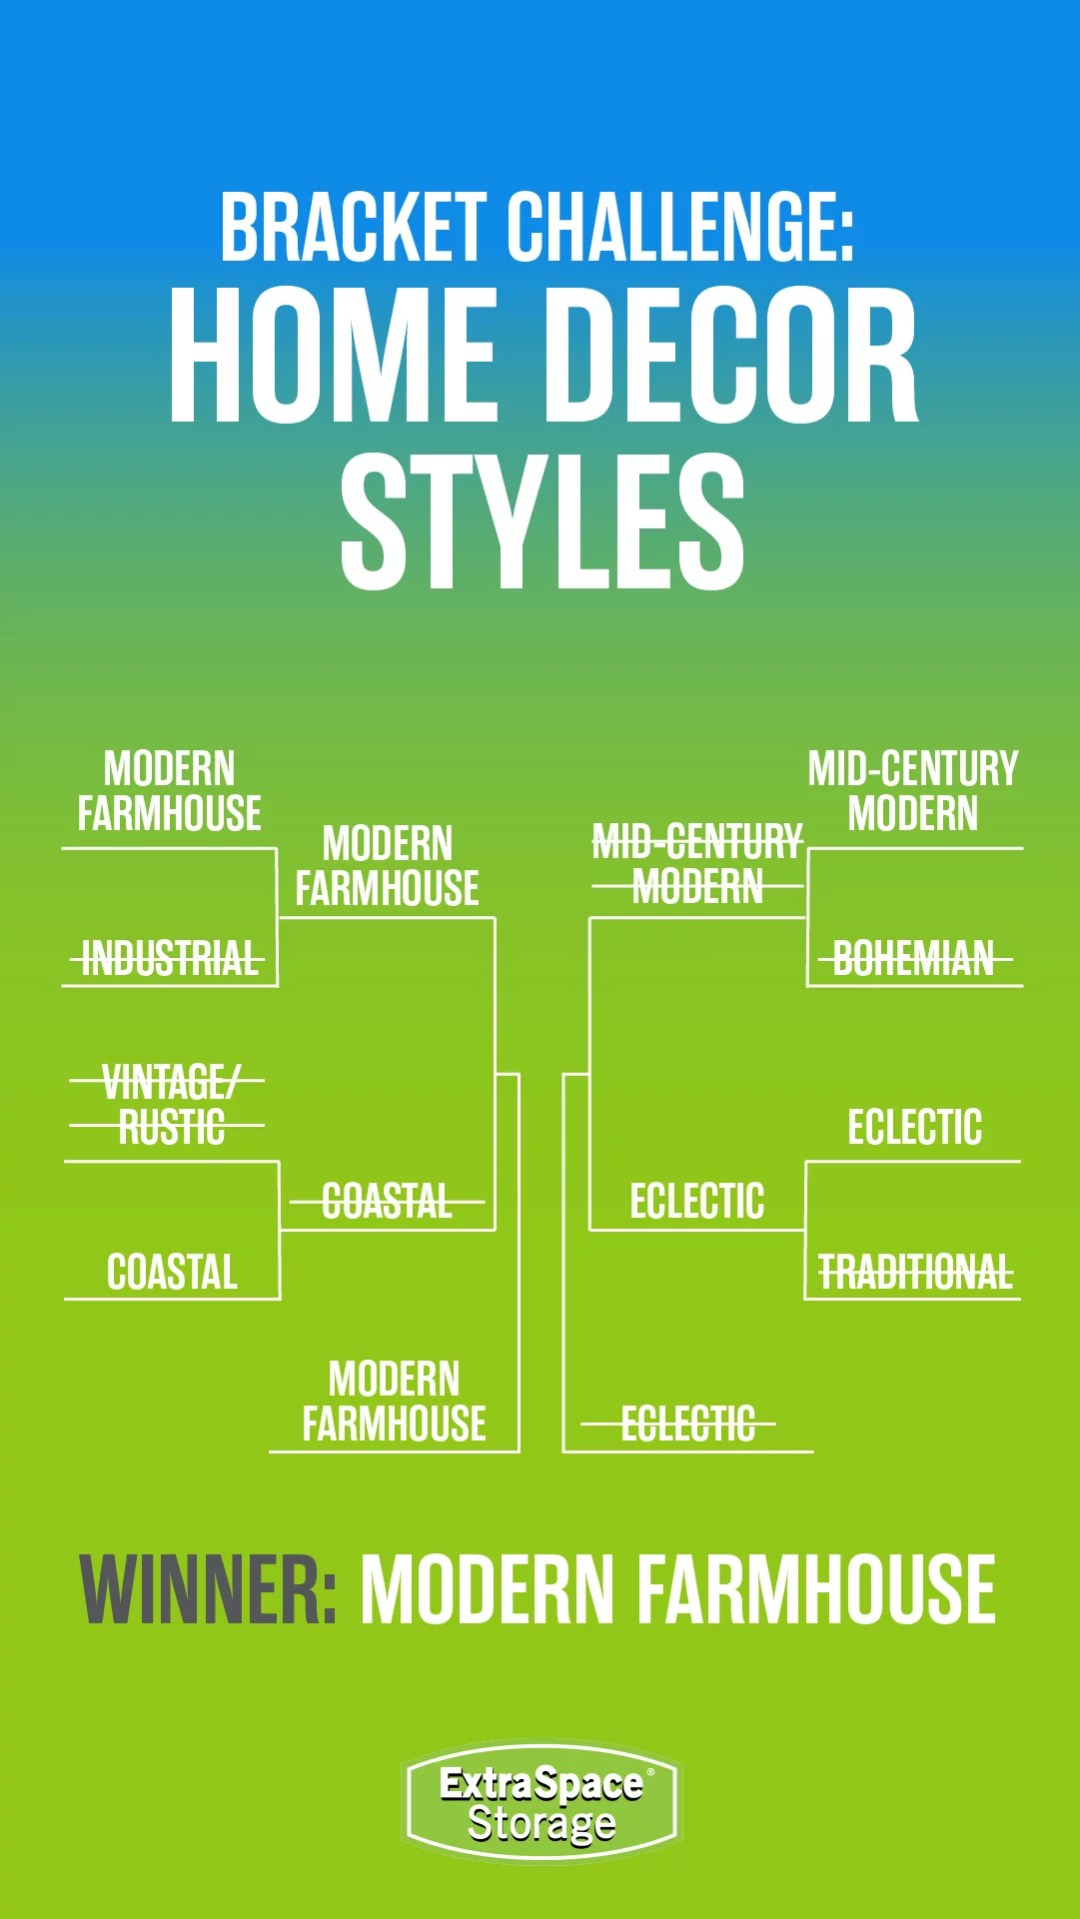 Extra Space Storage Bracket Challenge Infographic: Home Decor Styles